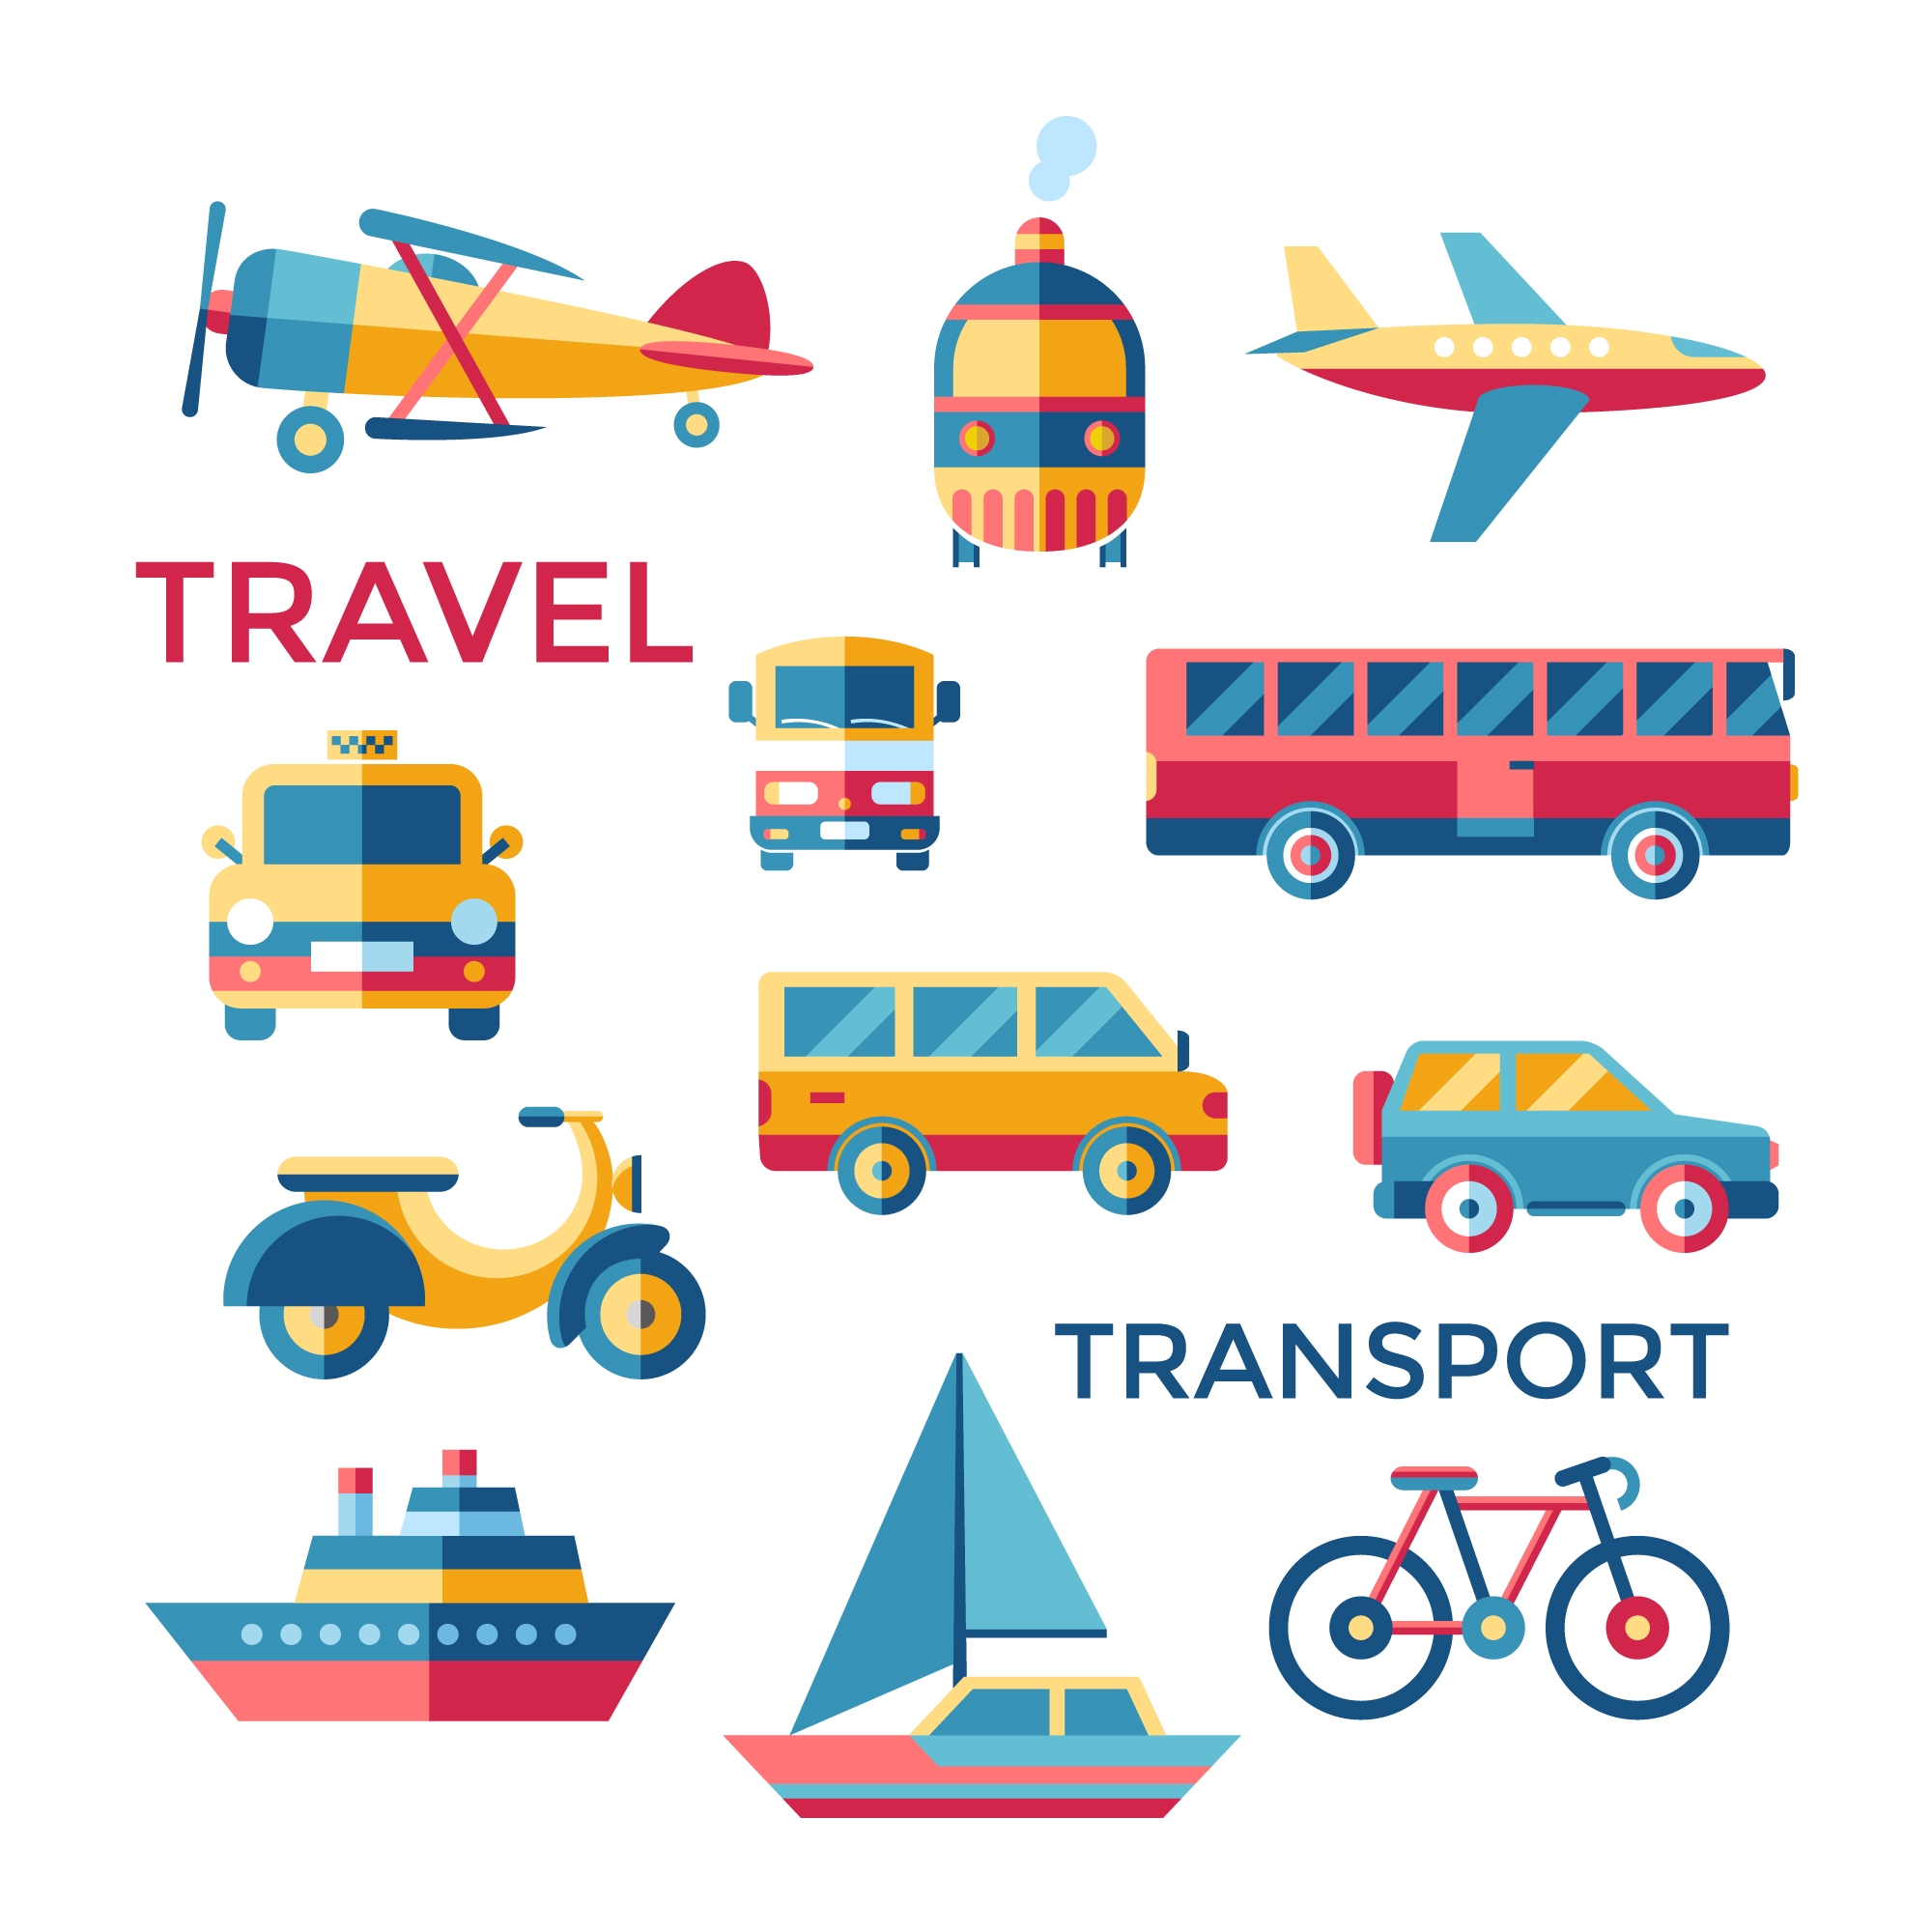 Transport elements collection